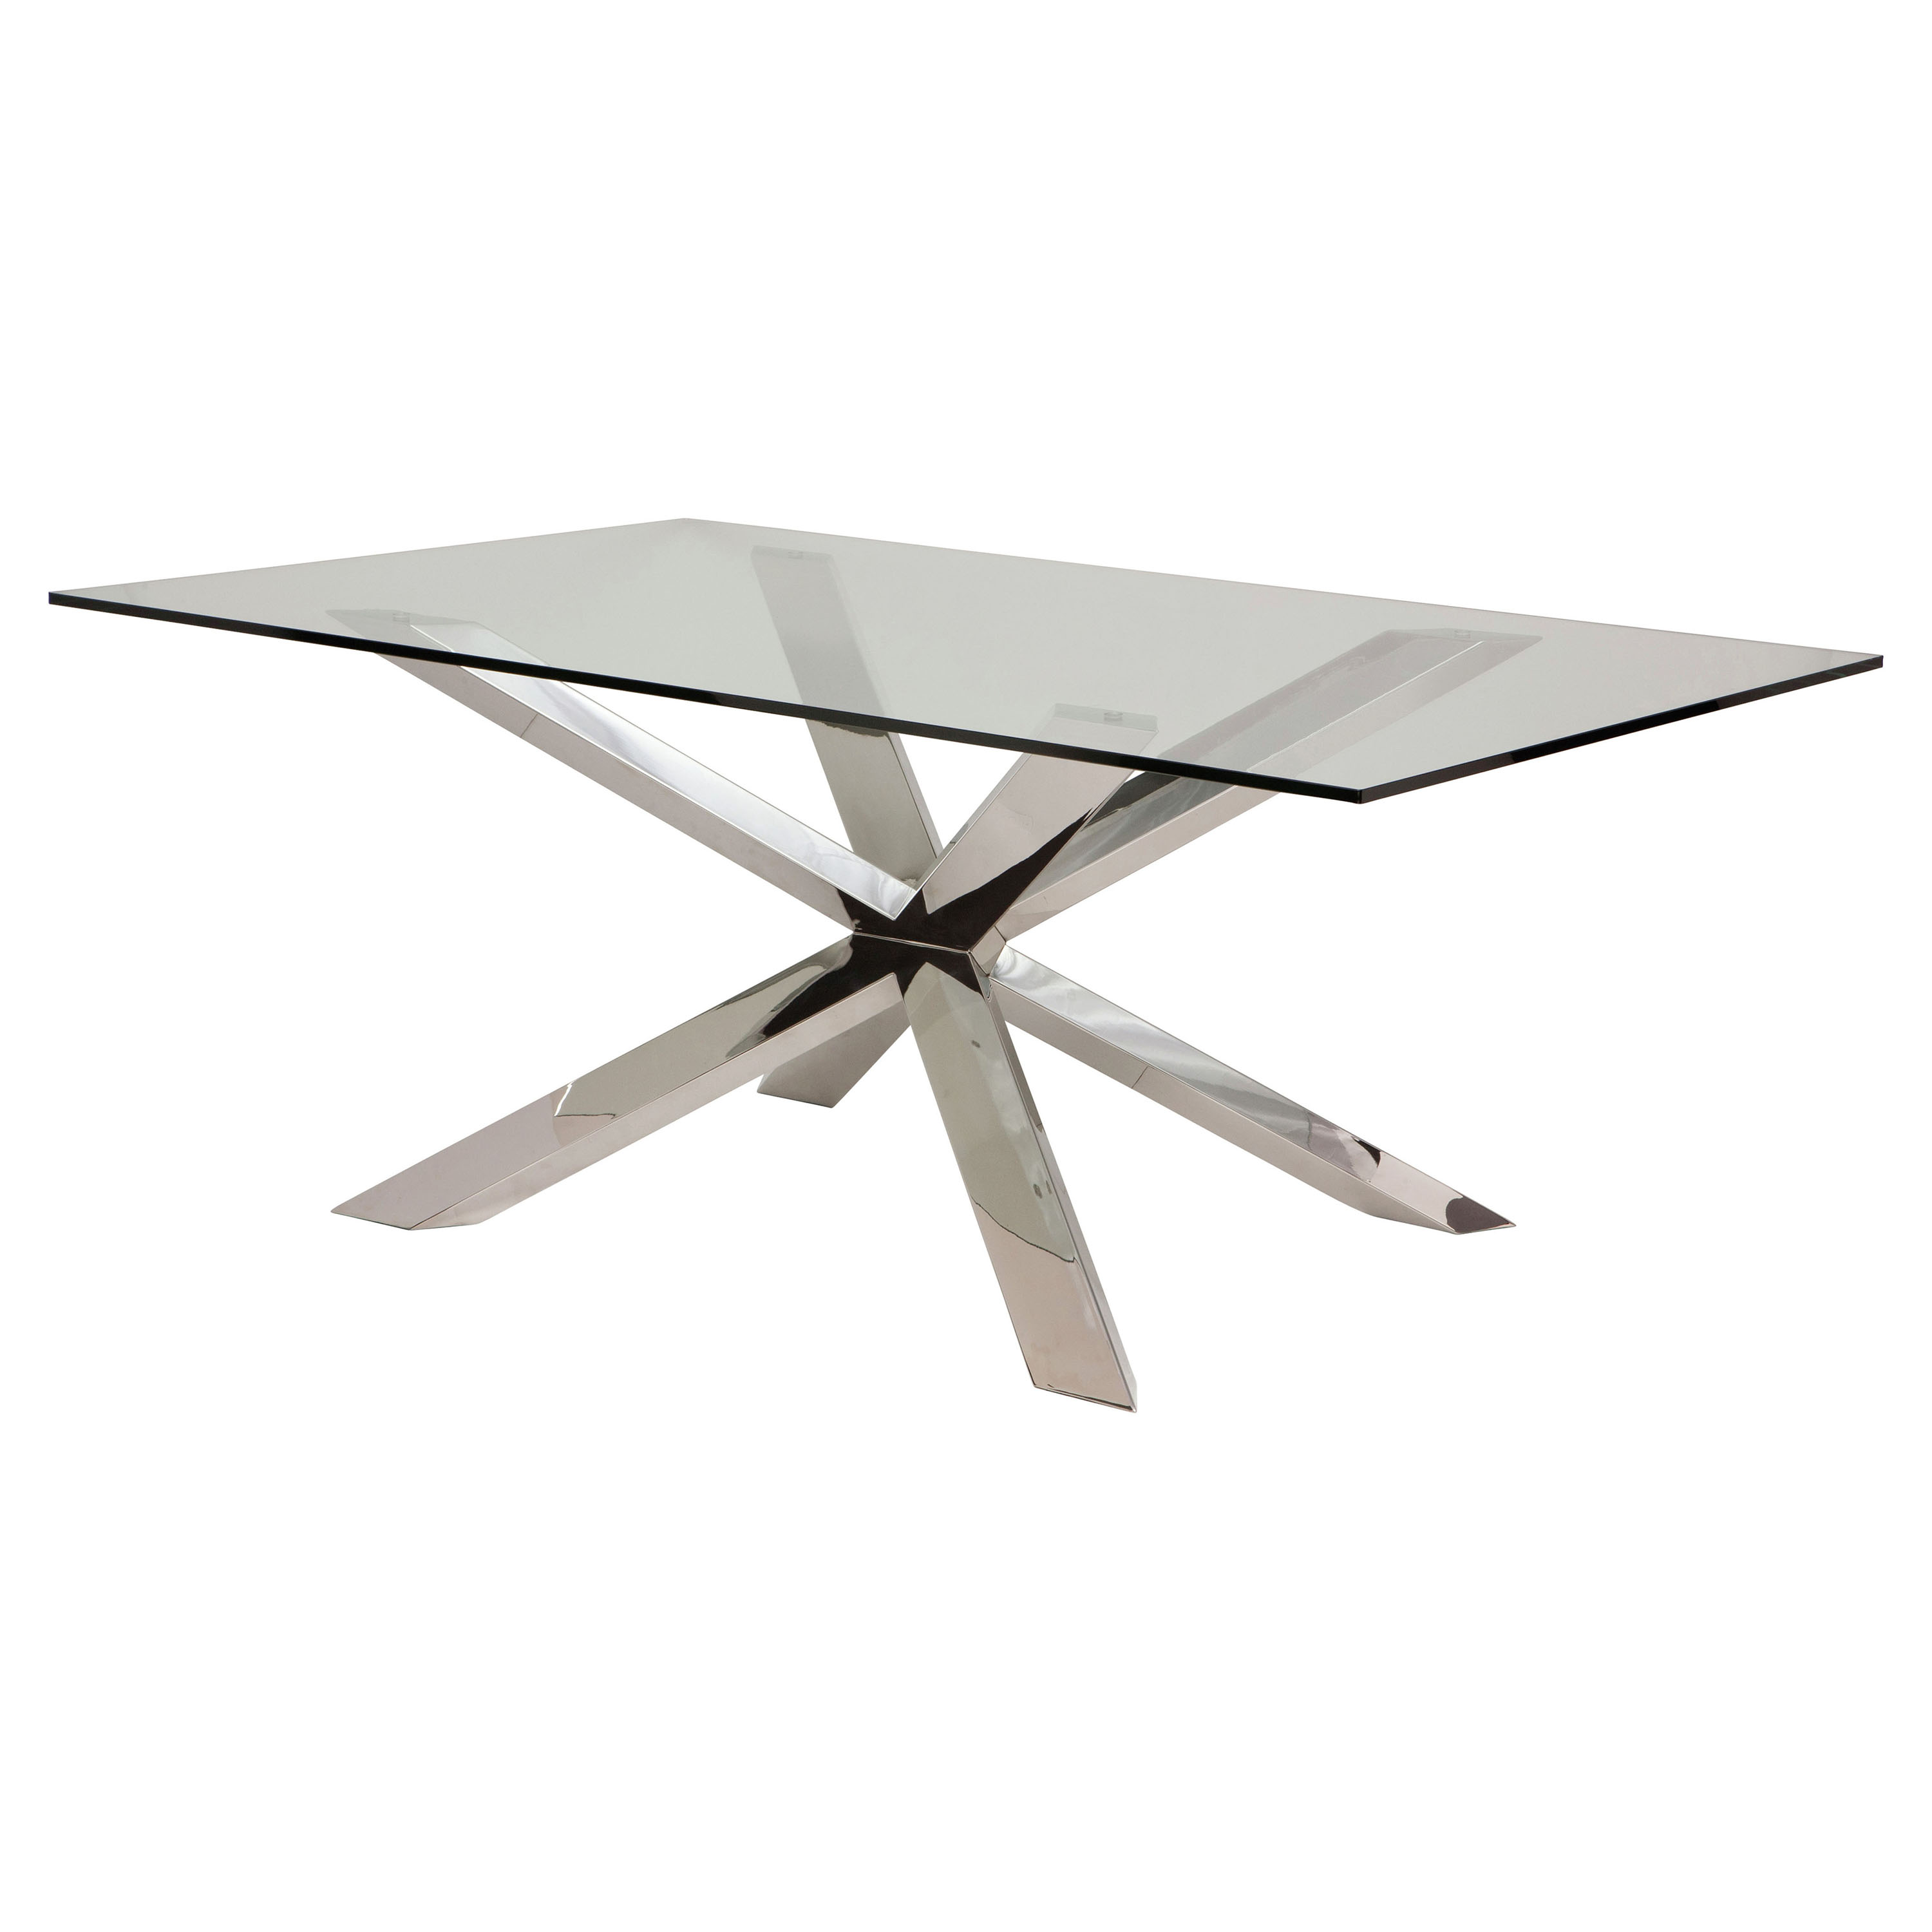 Prudence Modern Classic Glass Top Silver Dining Table - 94.5W